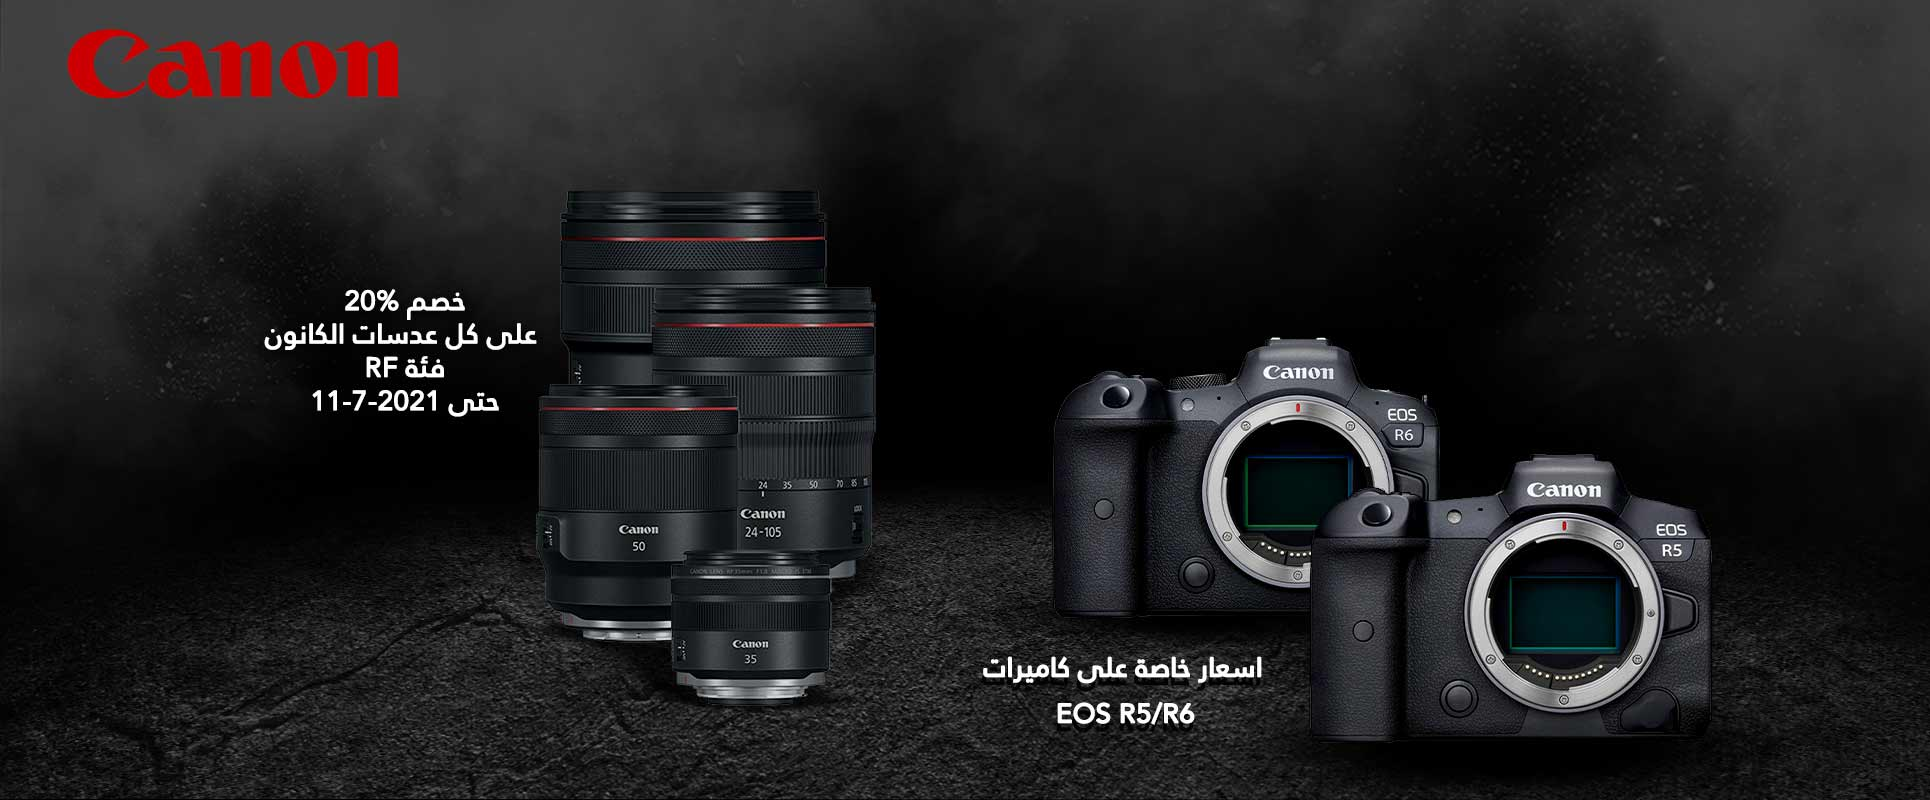 canon offers